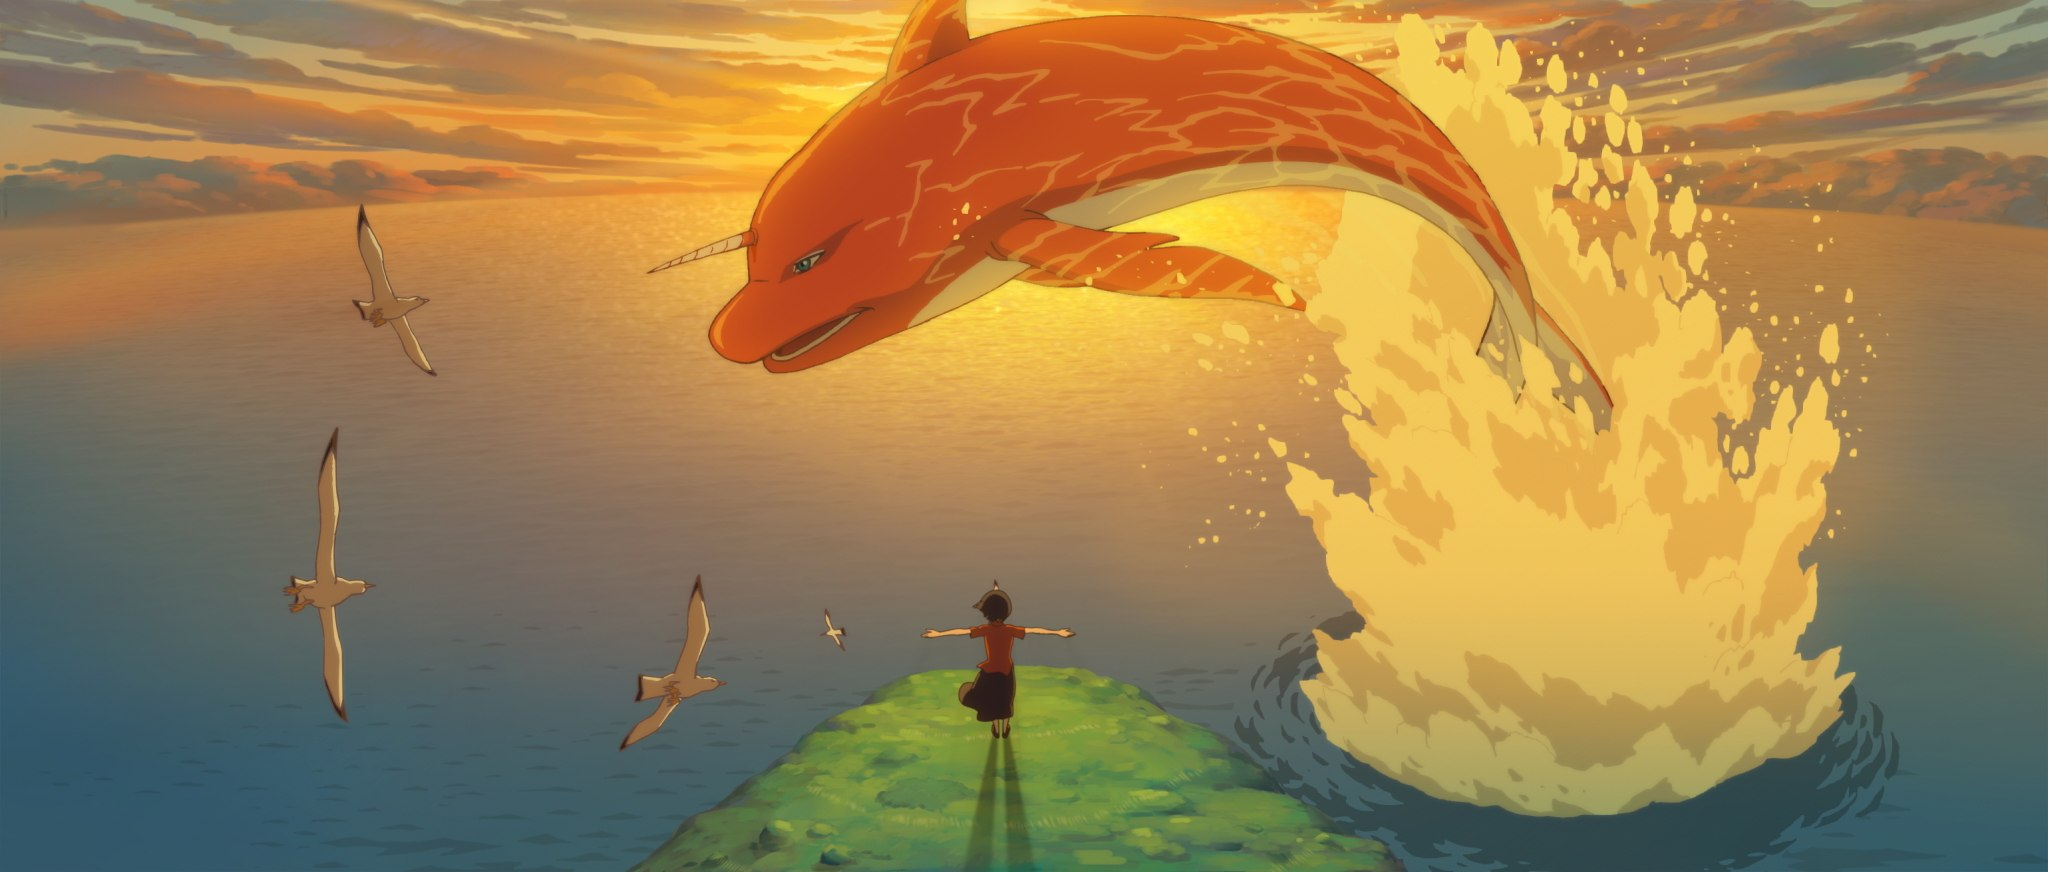 10 animated features to compete at annecy 2017 animation world network